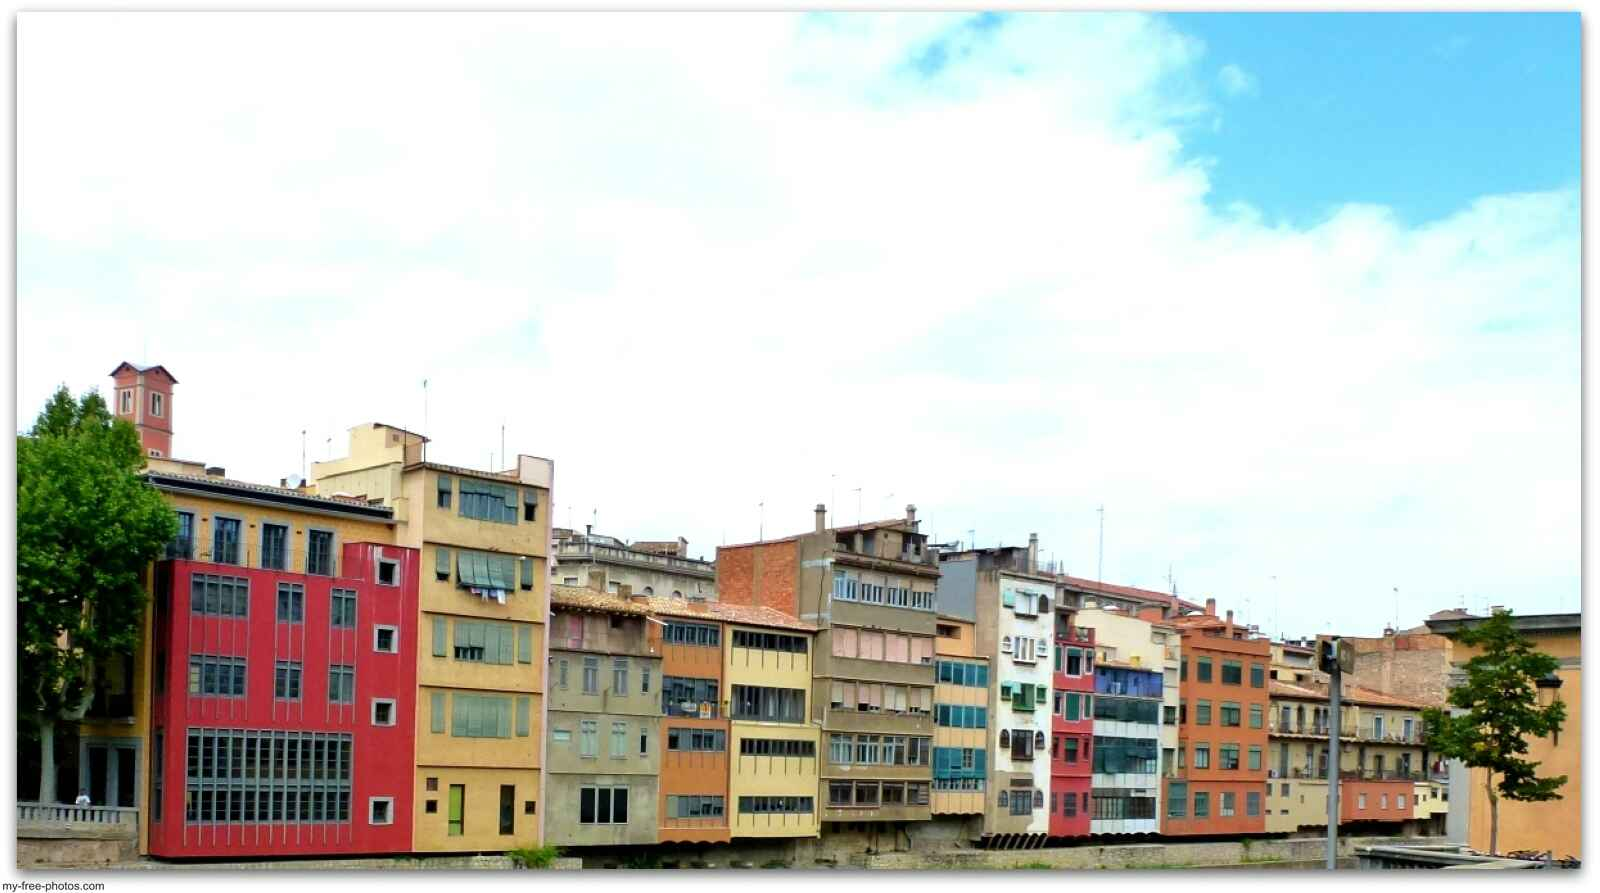 apartments by the river Onya,Spain